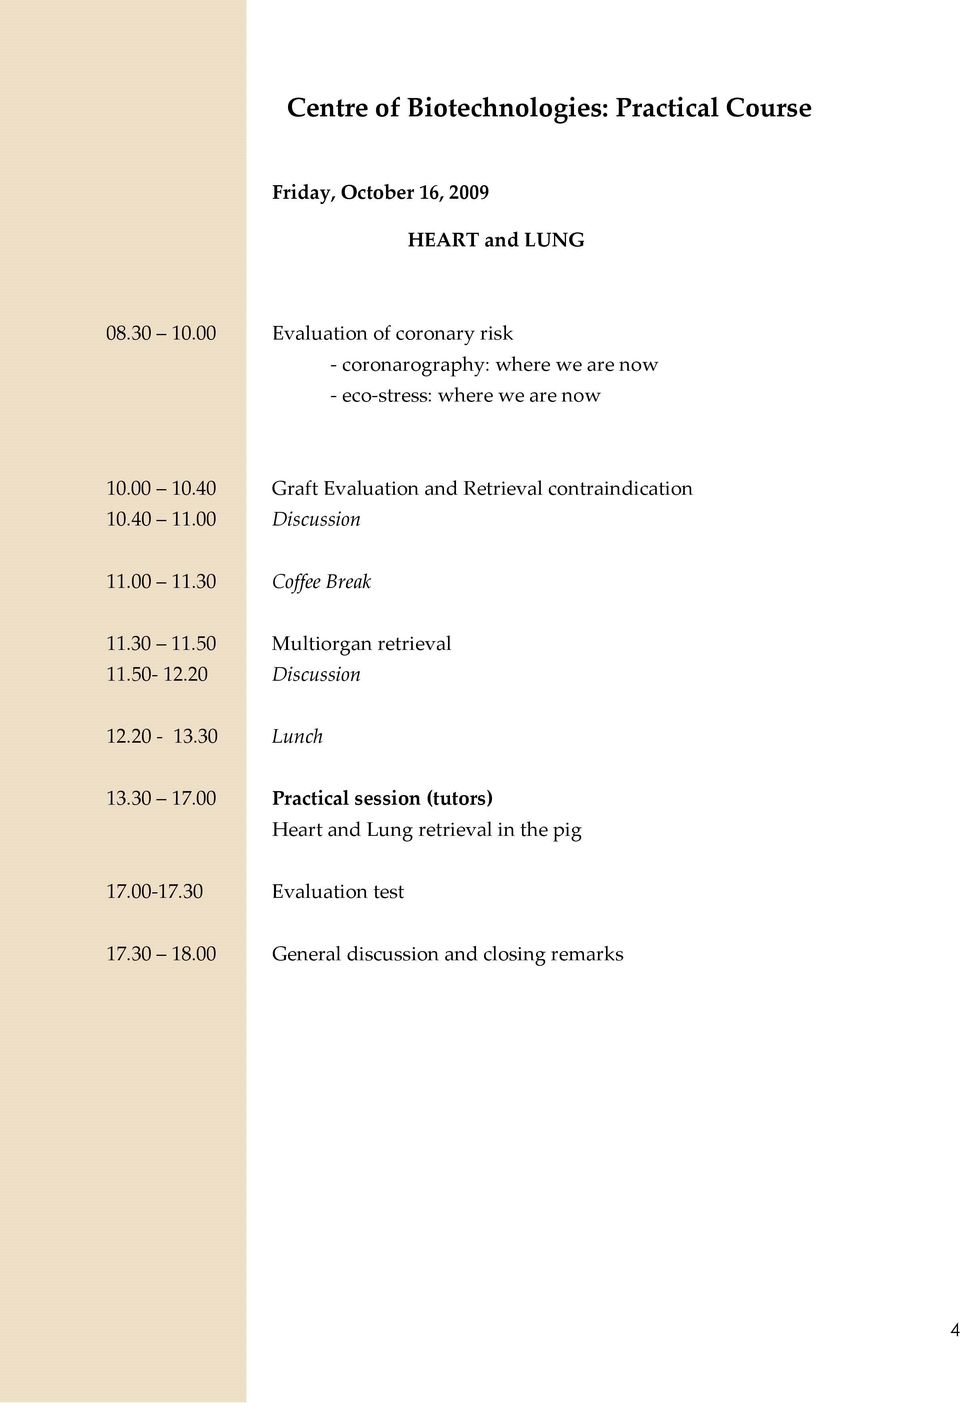 40 Graft Evaluation and Retrieval contraindication 10.40 11.00 Discussion 11.00 11.30 Coffee Break 11.30 11.